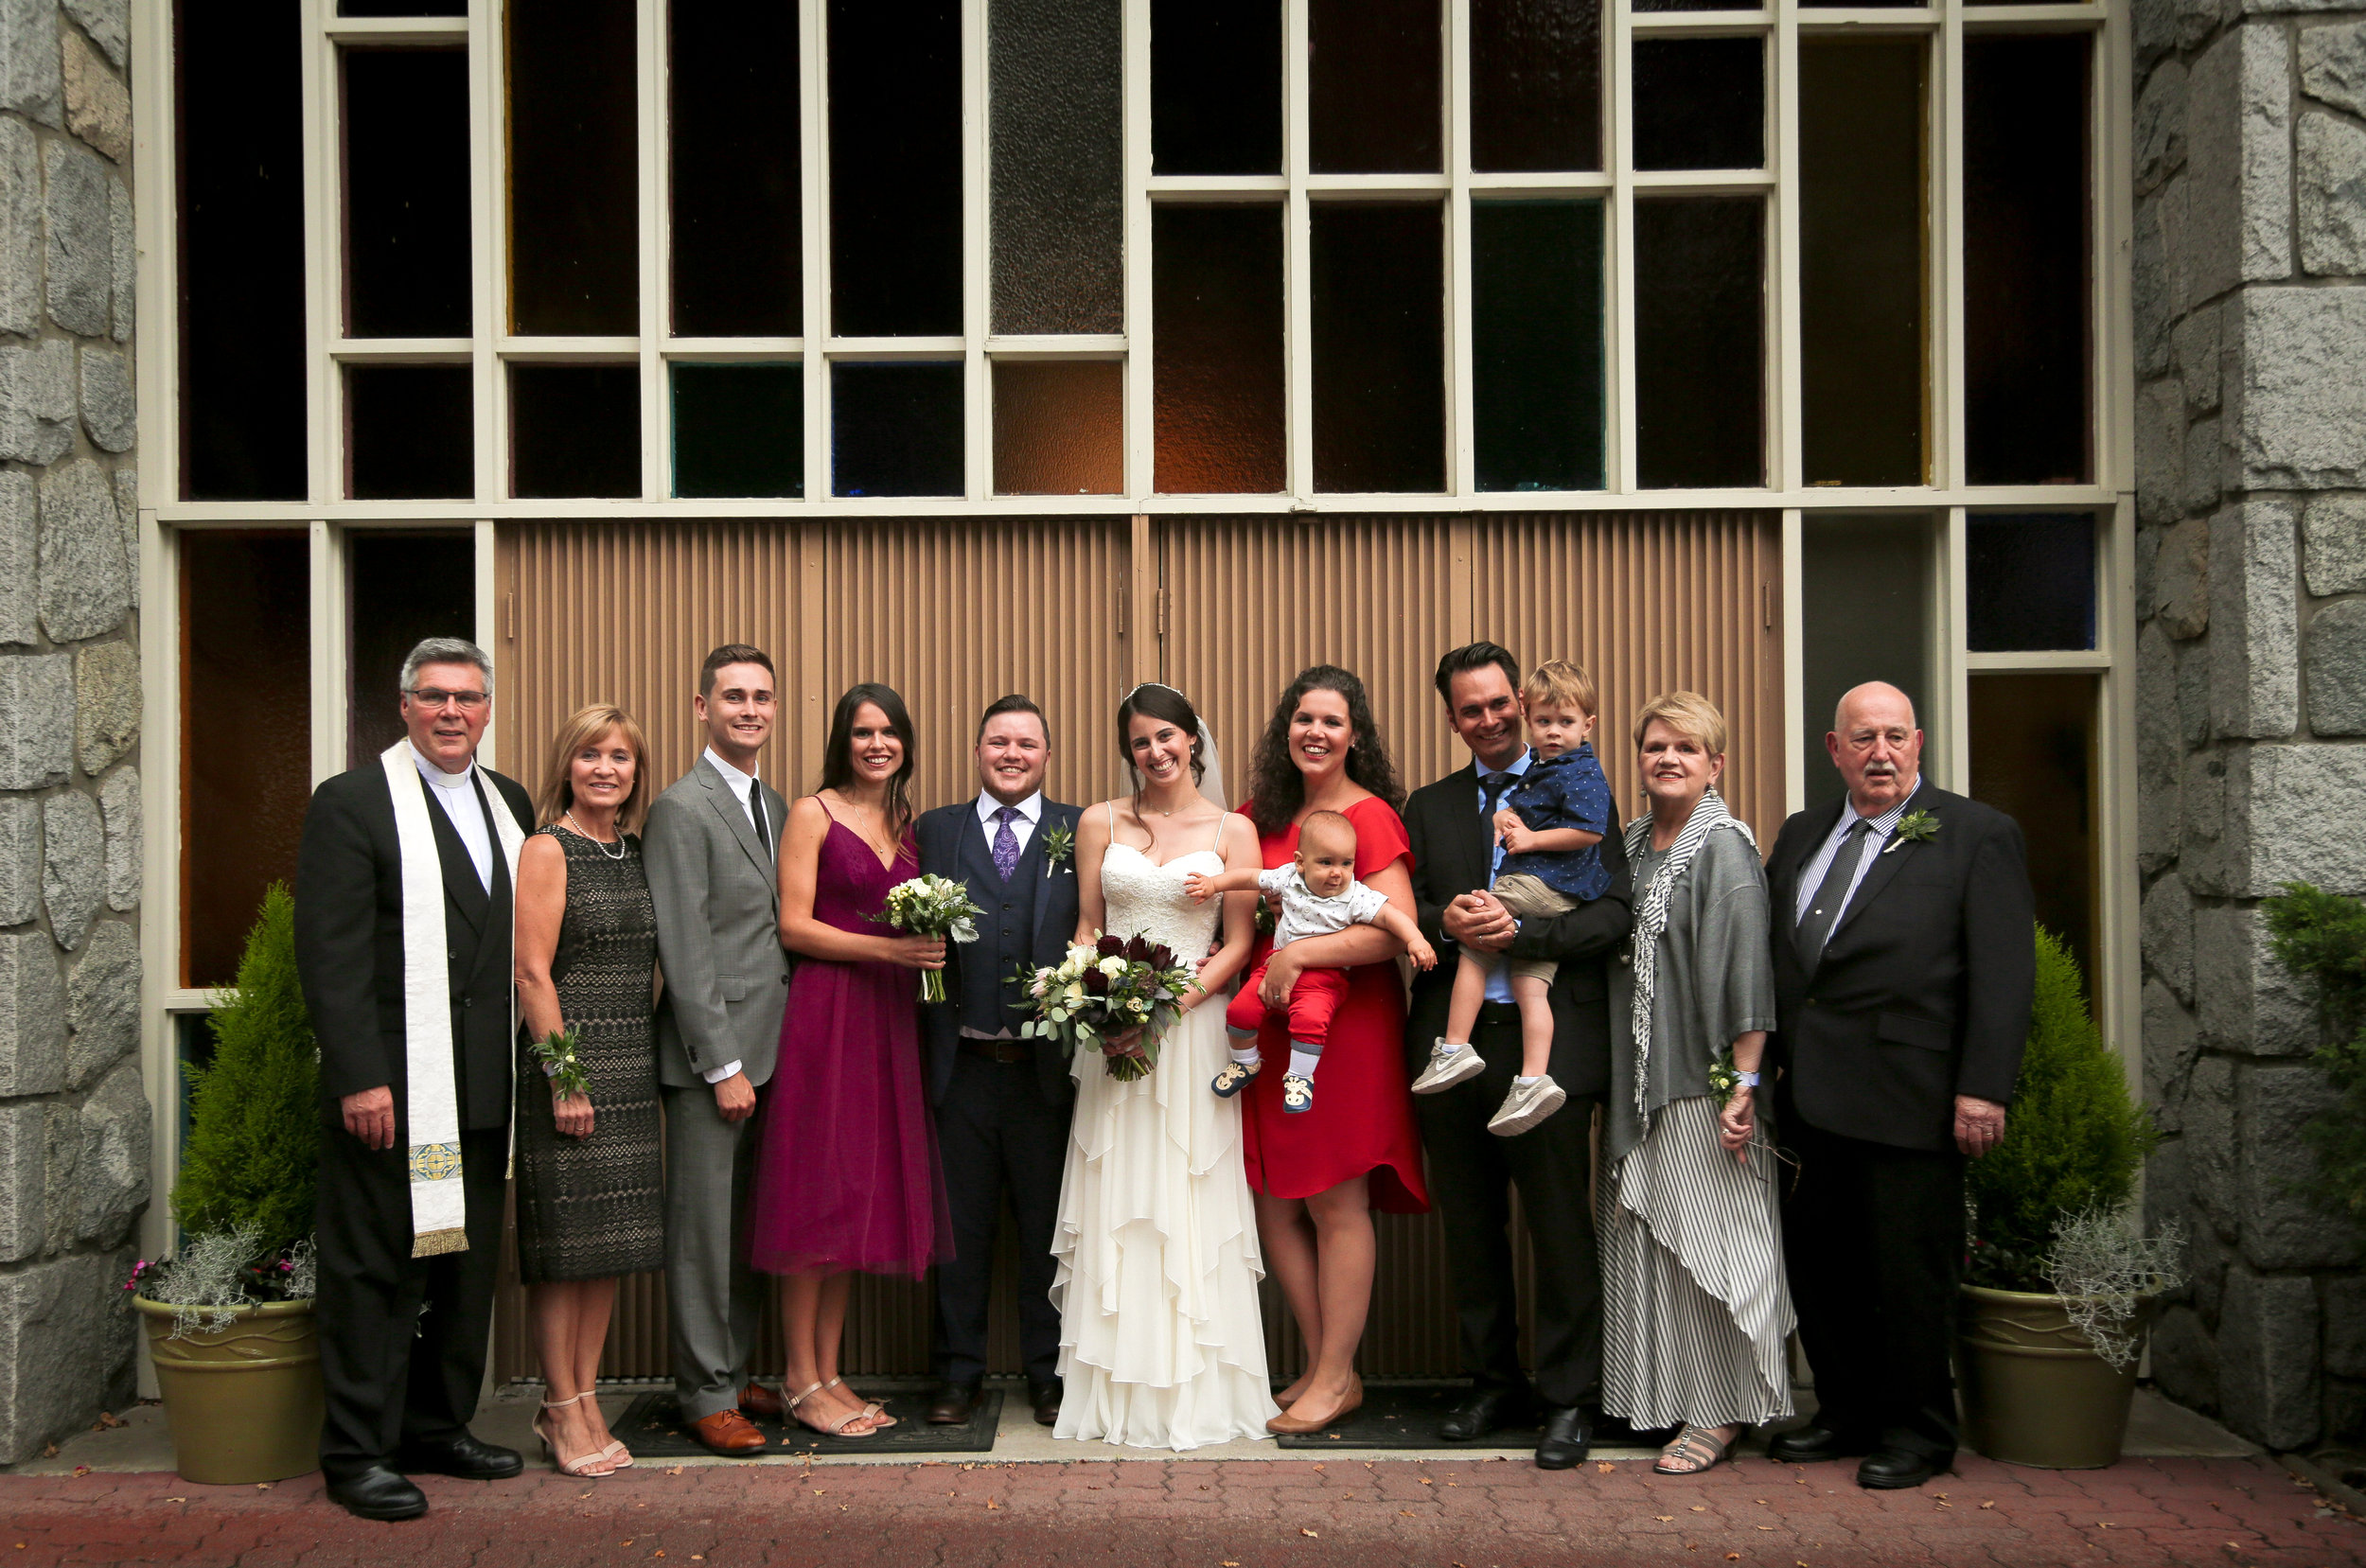 Emily&AaronWedding (313 of 572).jpg